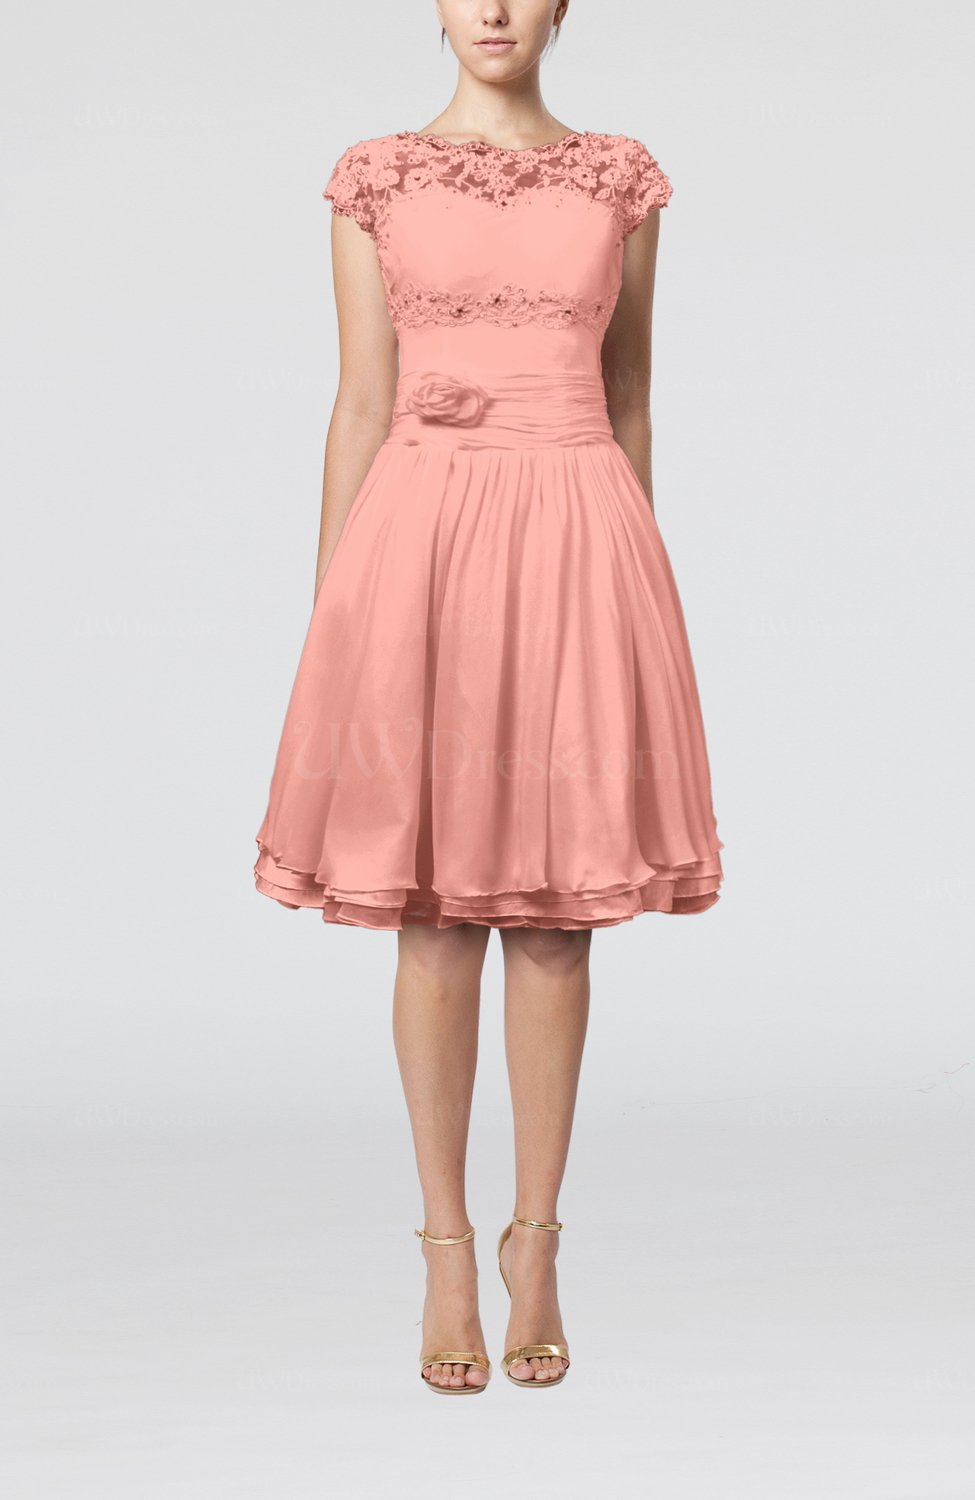 Peach Color Party Dresses - UWDress.com